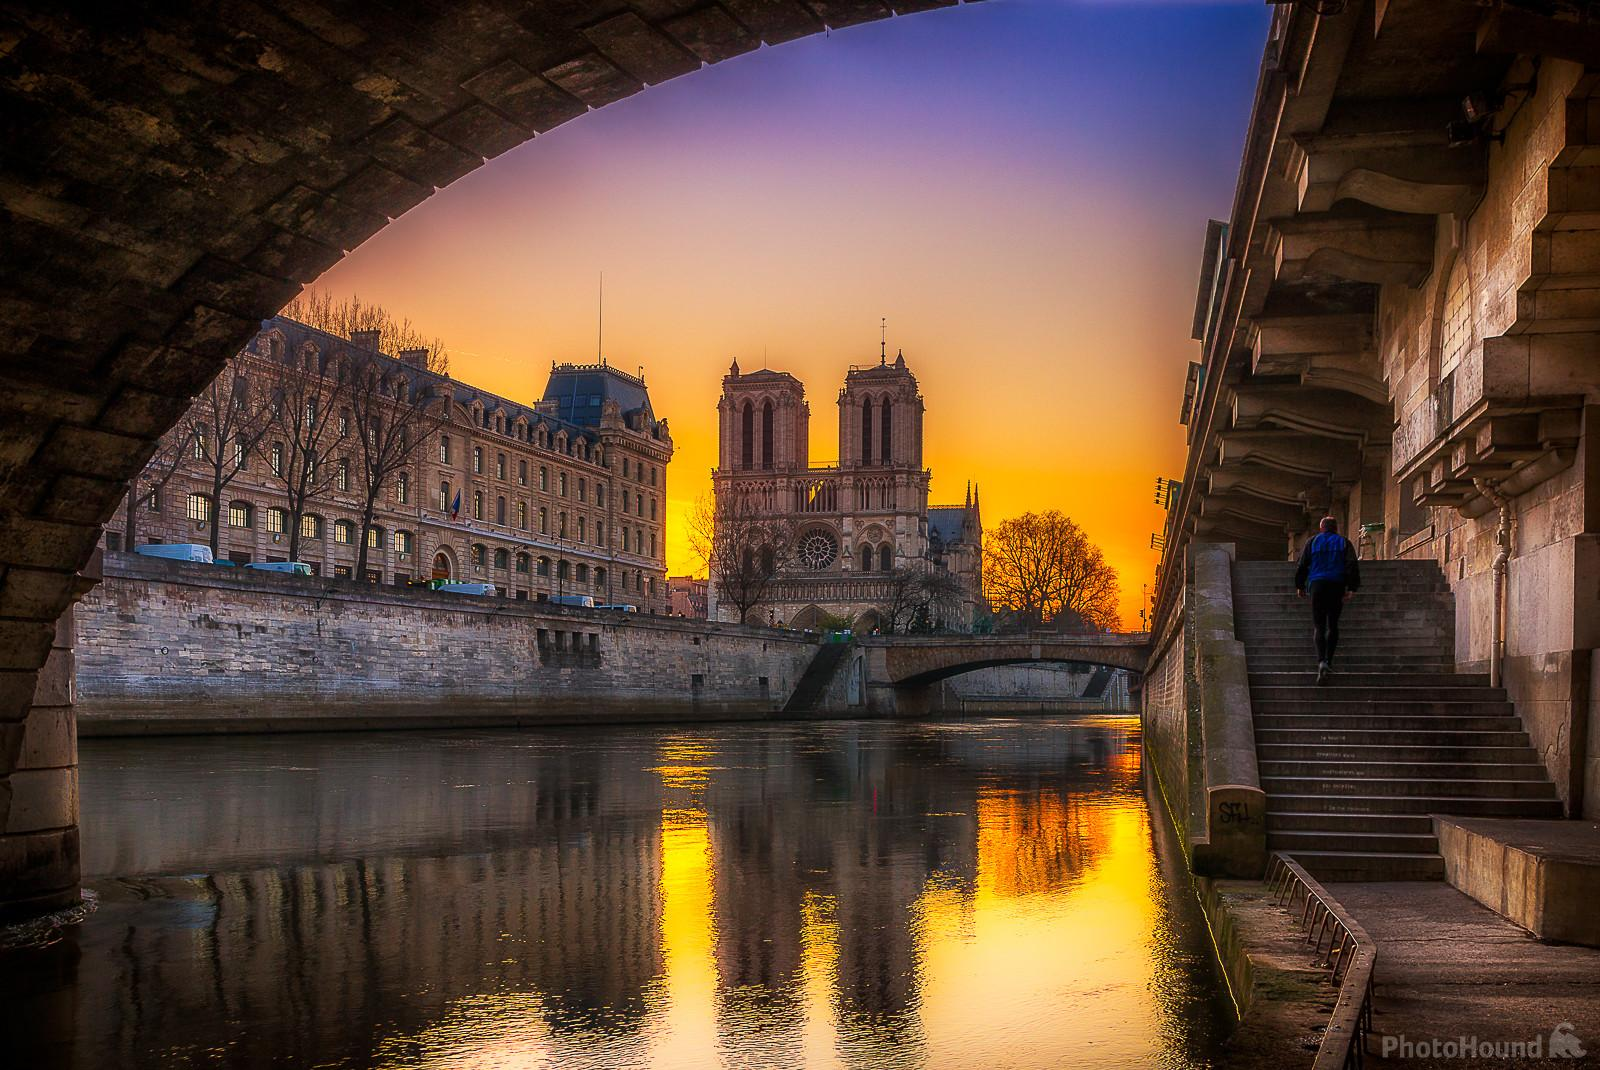 Sunrise behind the Cathedral Notre Dame de Paris and the police headquarters seen from under the Pont St-Michel, Promenade René Capitan along the Seine. We also see the Petit Pont.